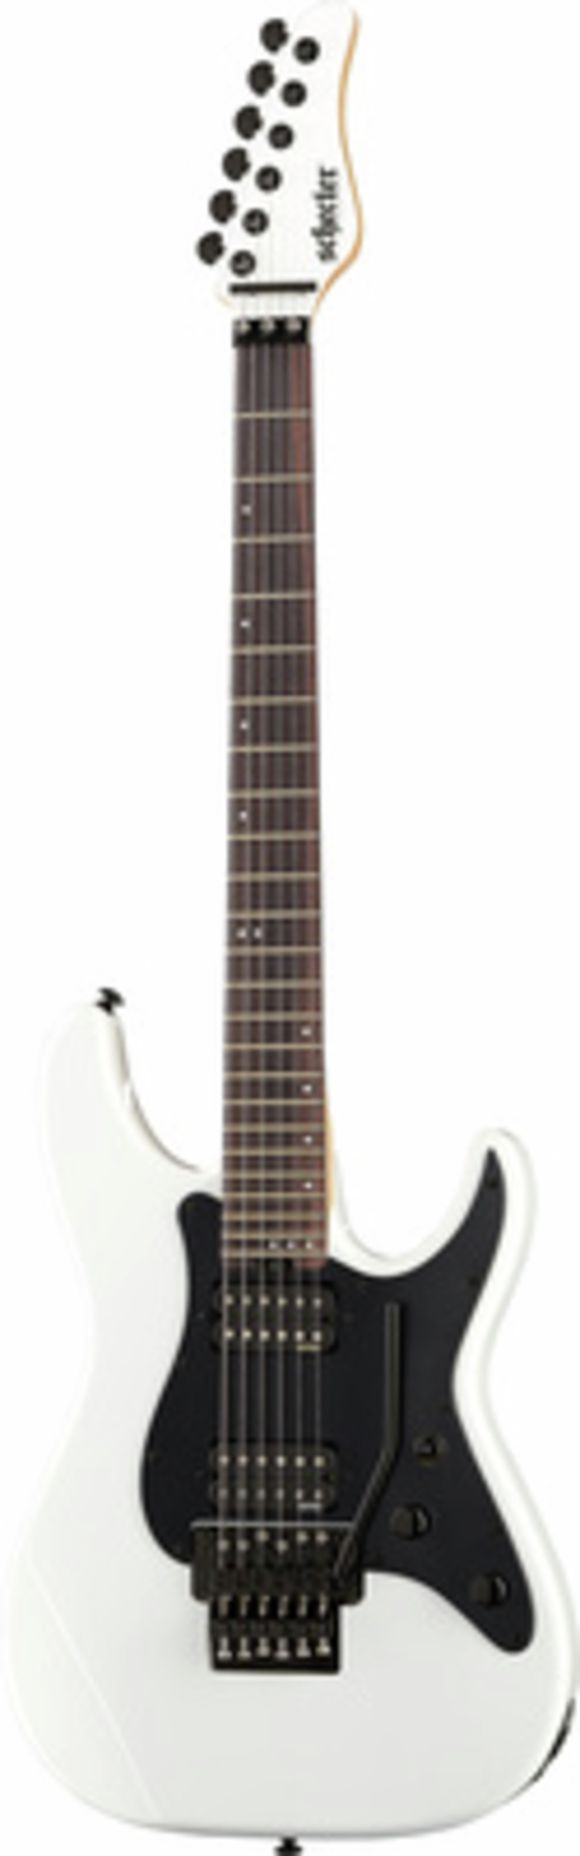 Sun Valley Super Shredder FR Schecter